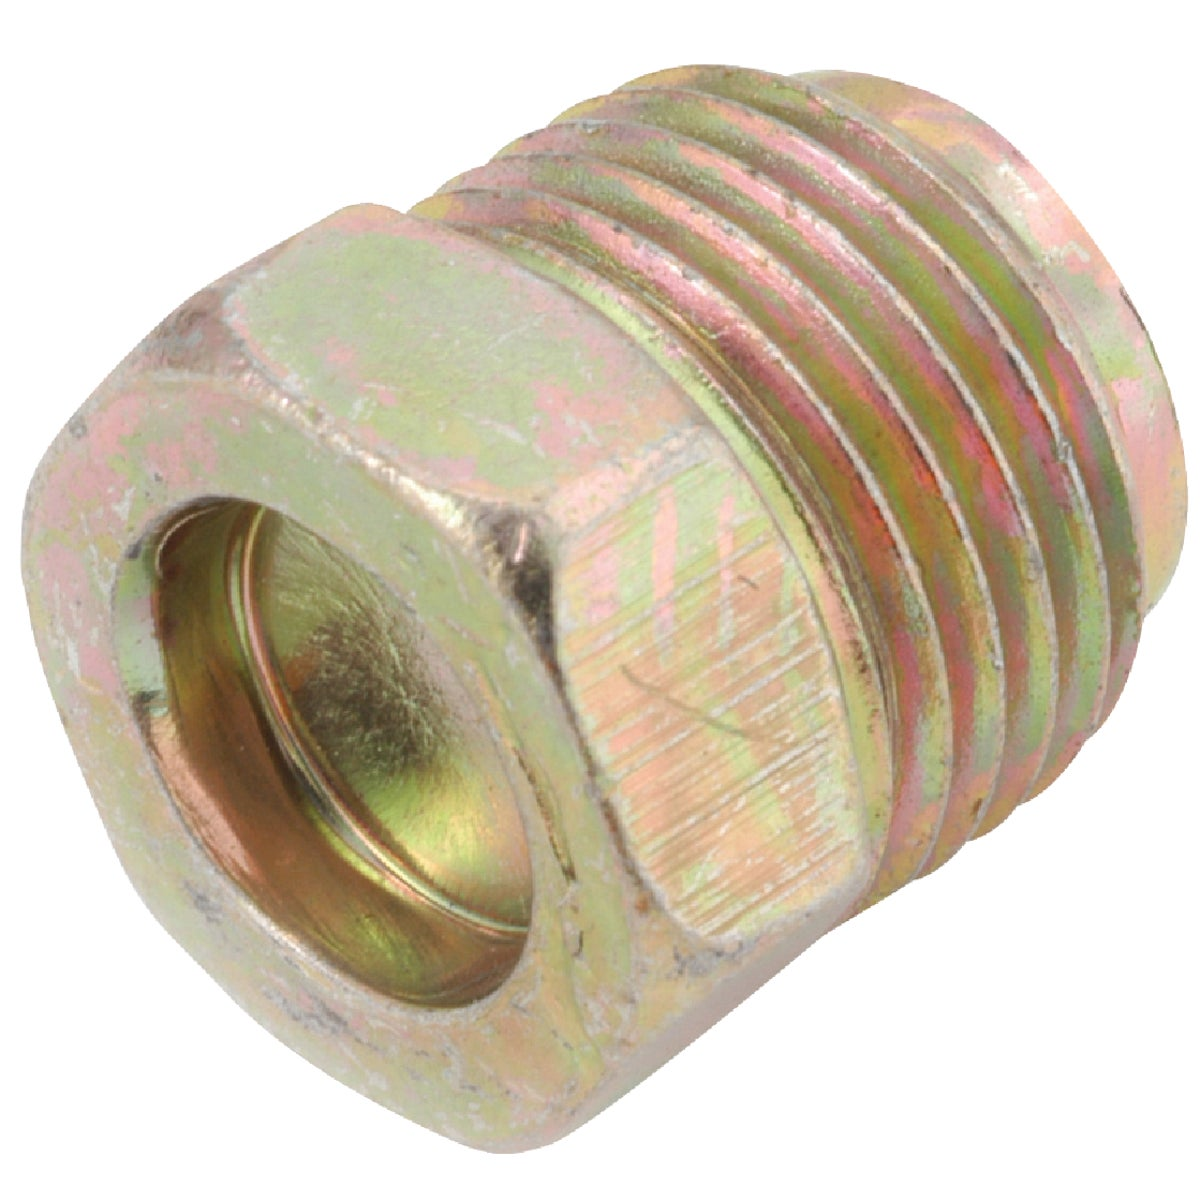 "3/8"" INVERTED PLUG - 54339-06 by Anderson Metals Corp"